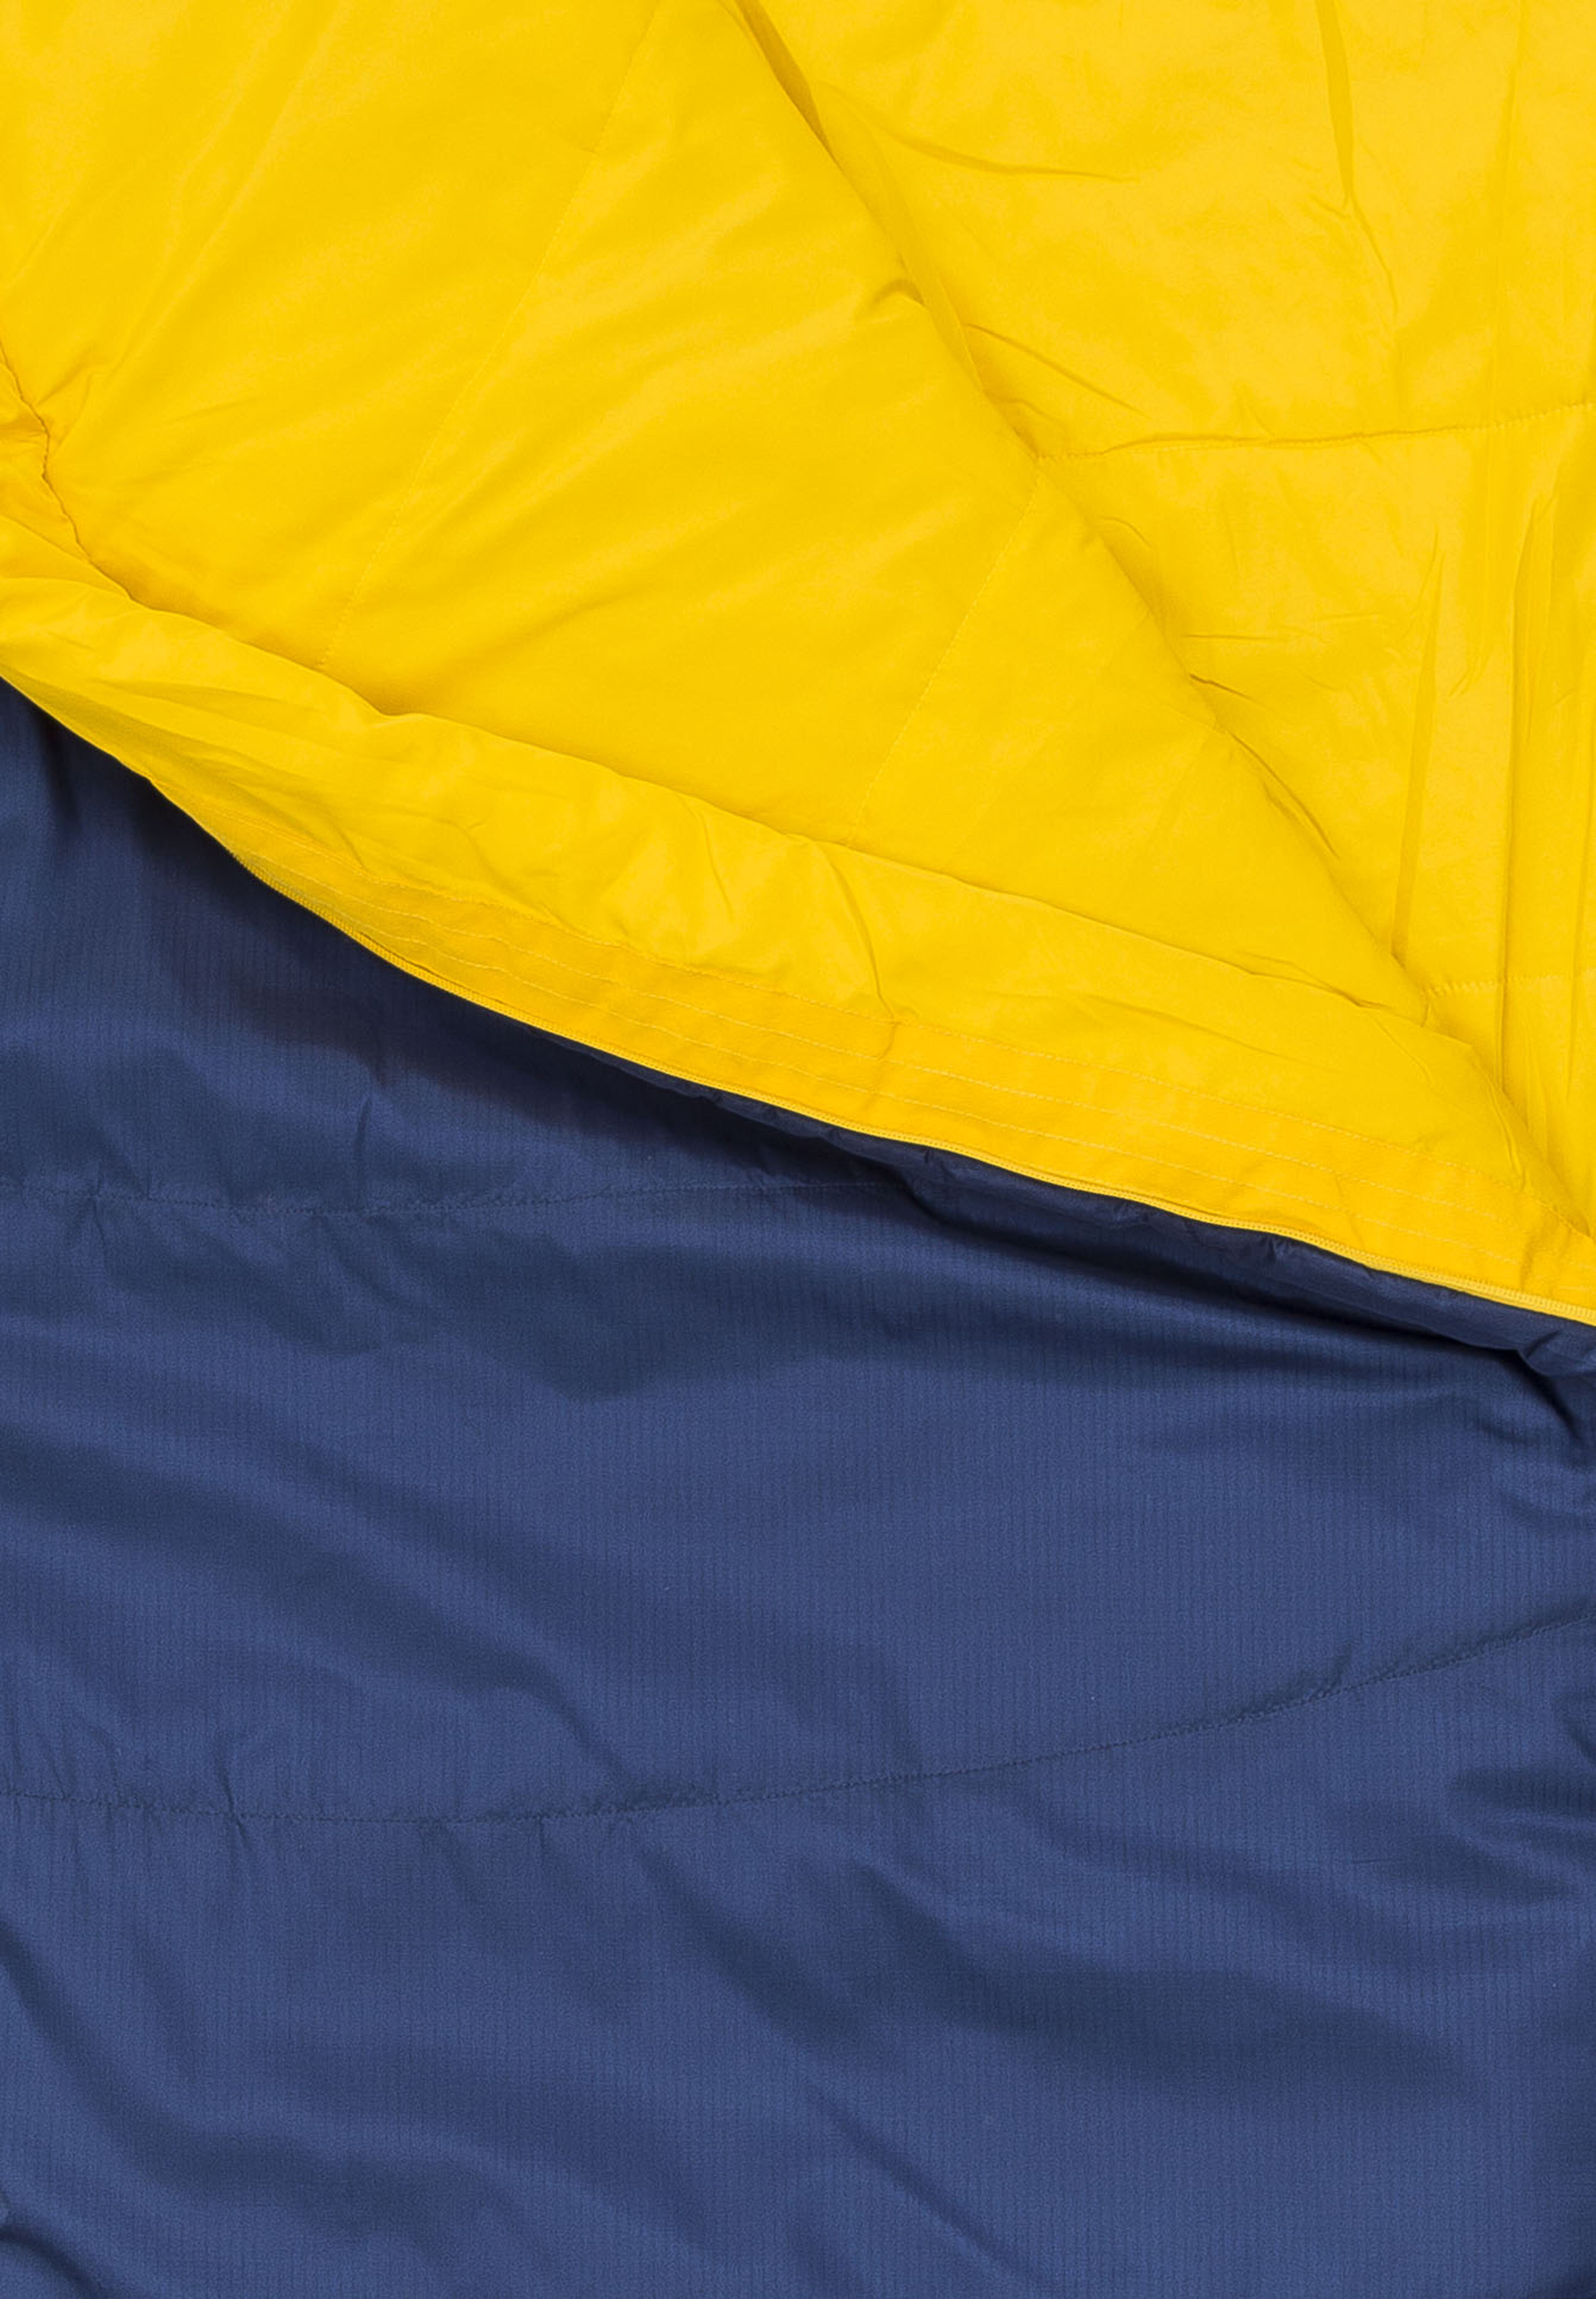 How to Choose the Right Size Sleeping Bag